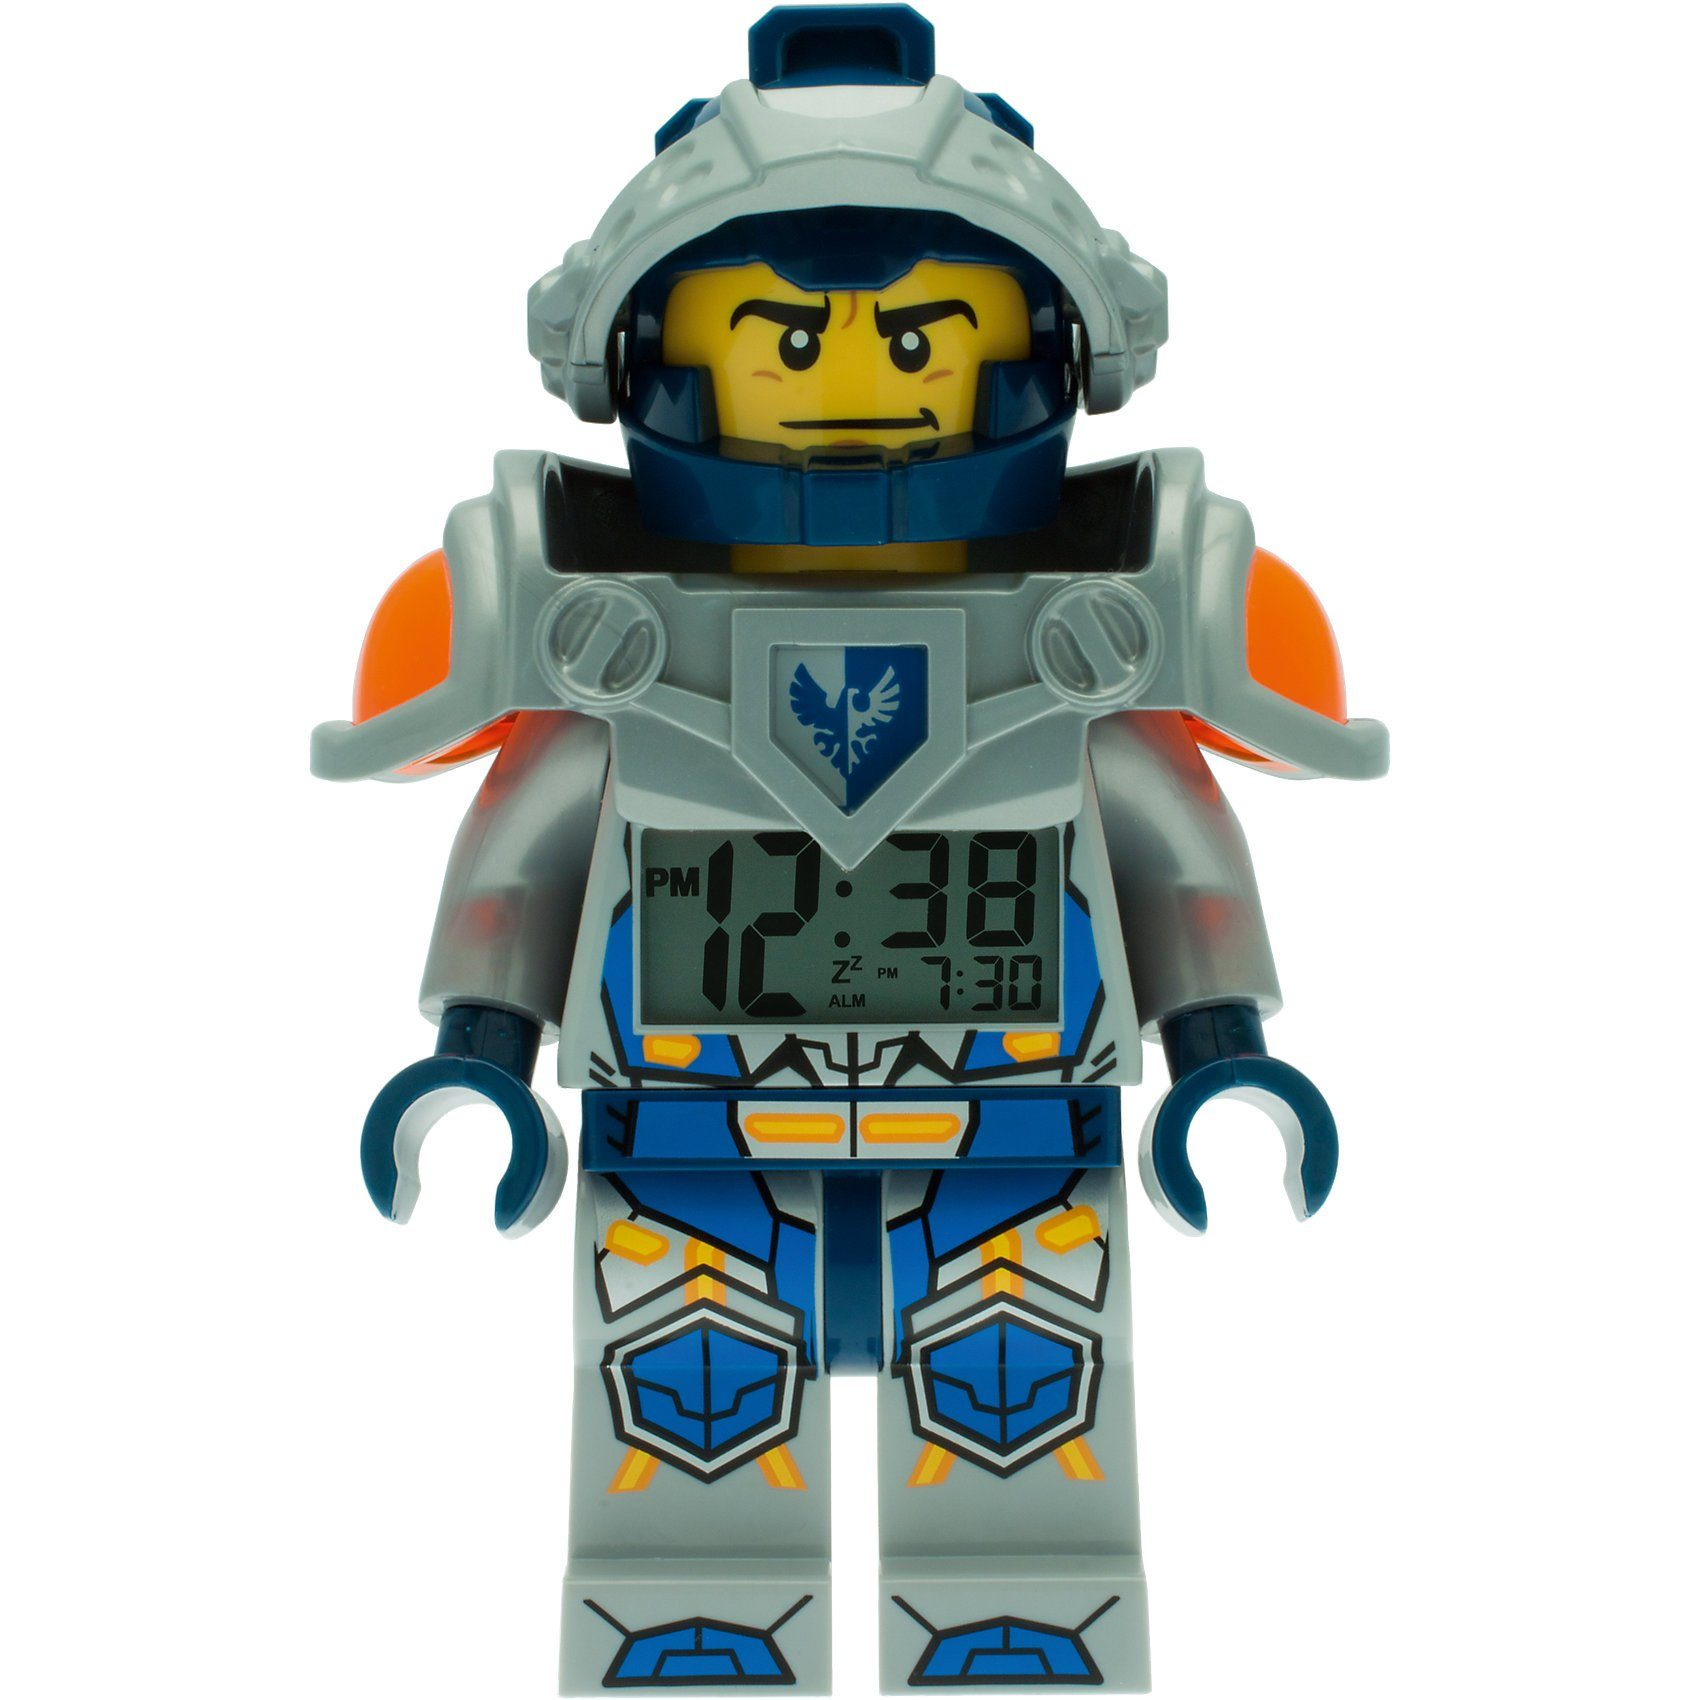 LEGO Nexo Knights Wecker - Clay